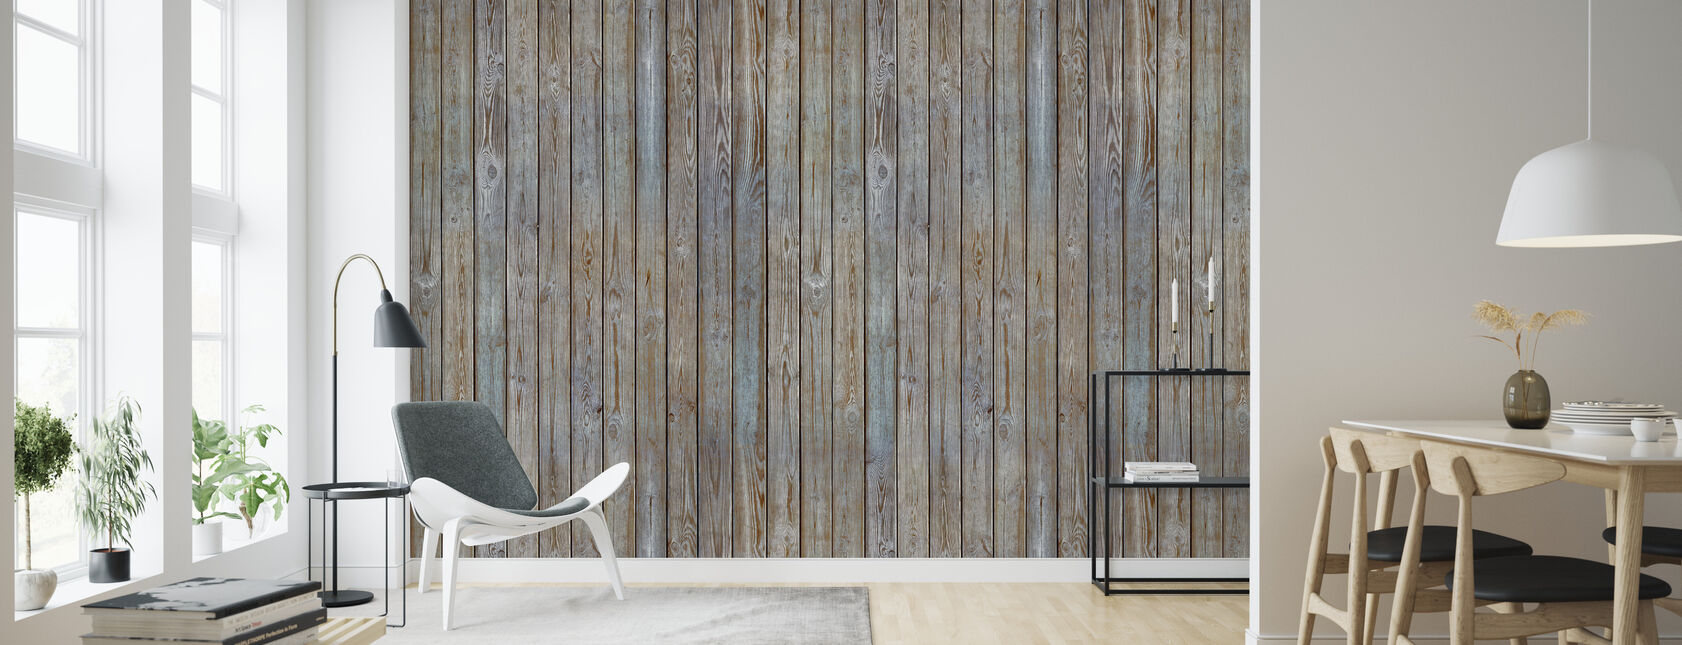 Wooden Plank Wall - Old Silver - Wallpaper - Living Room